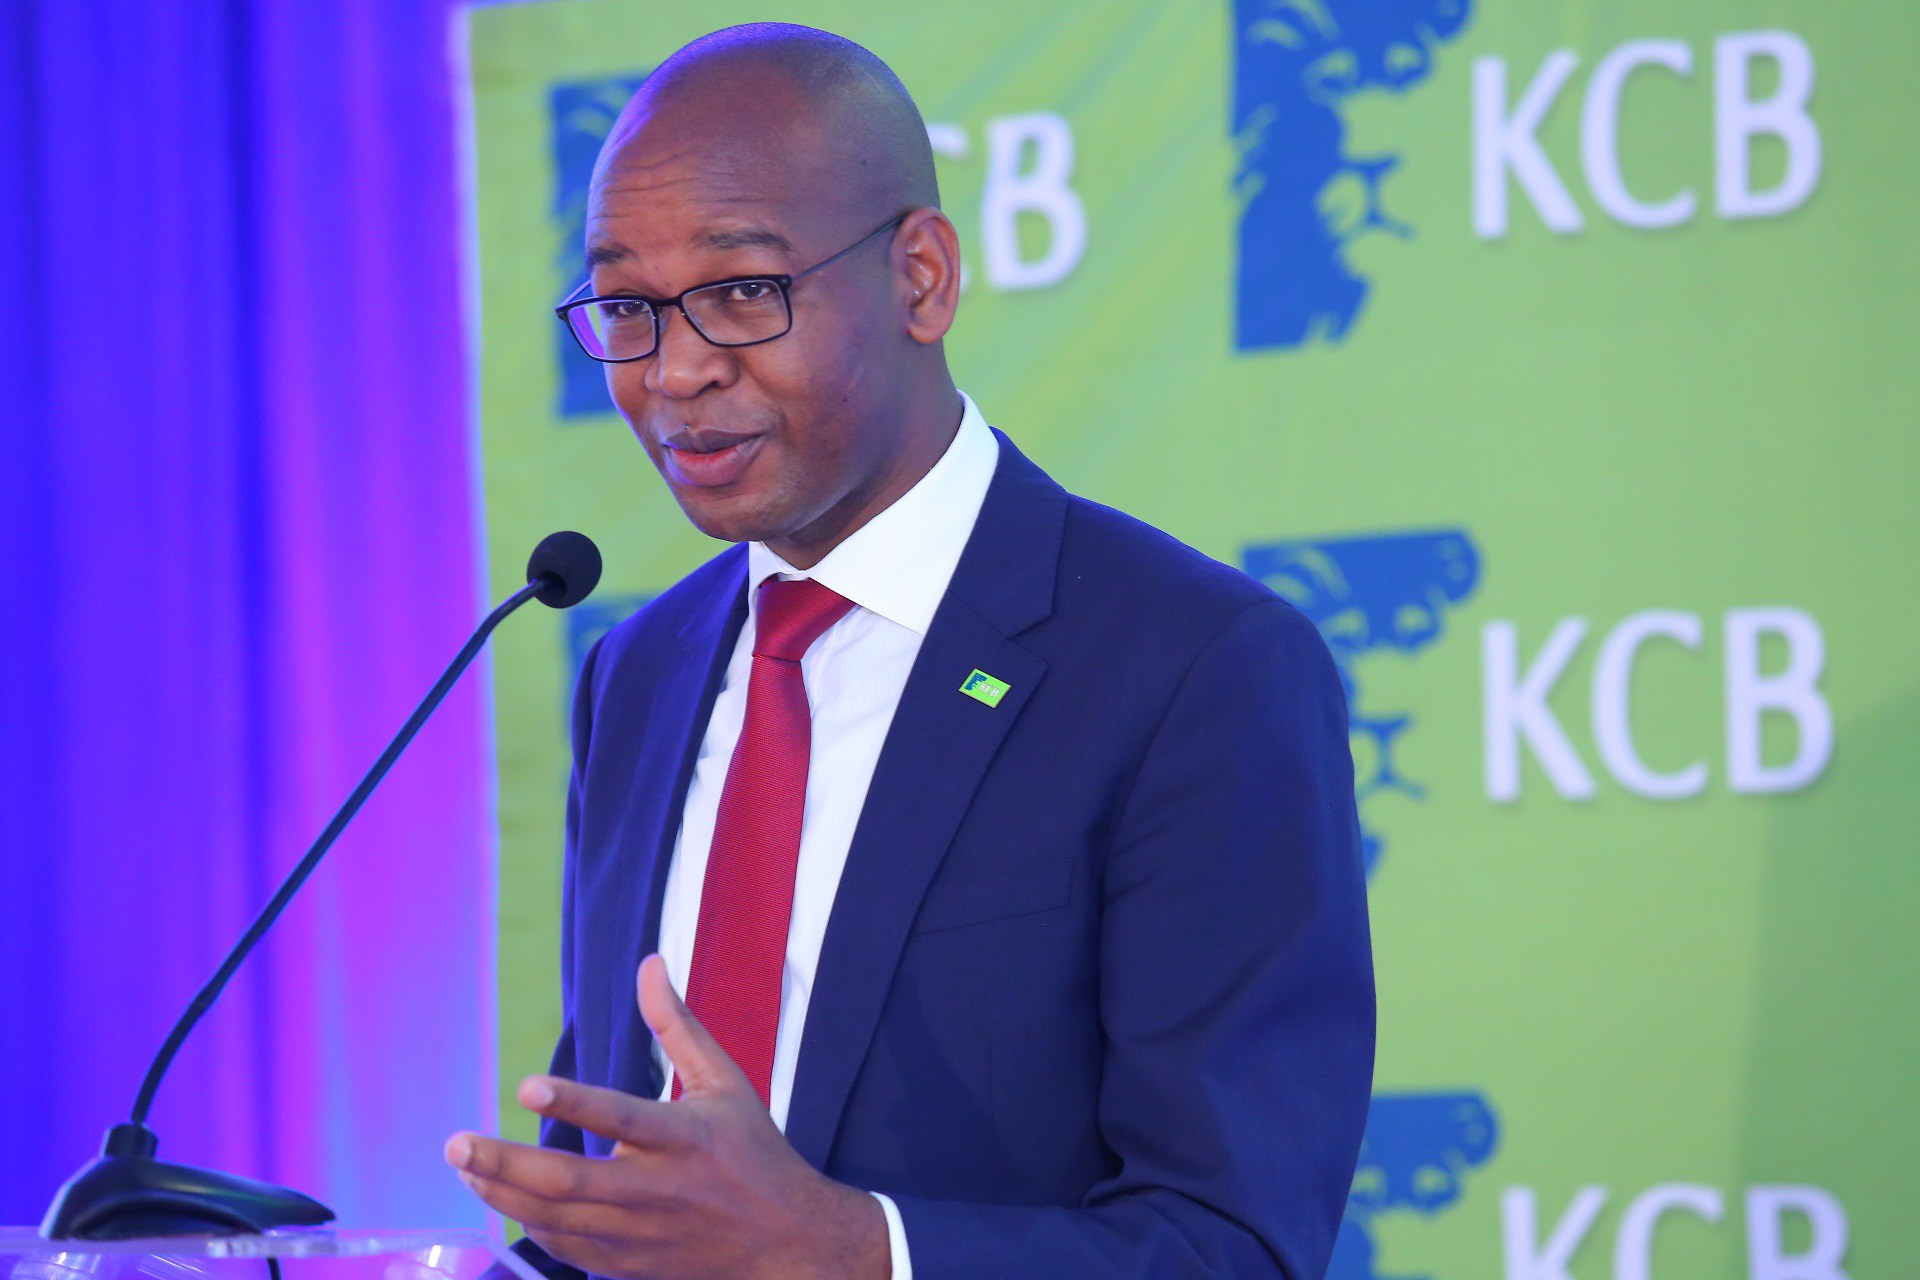 KCB Group topples Equity from top spot as operating environment toughens